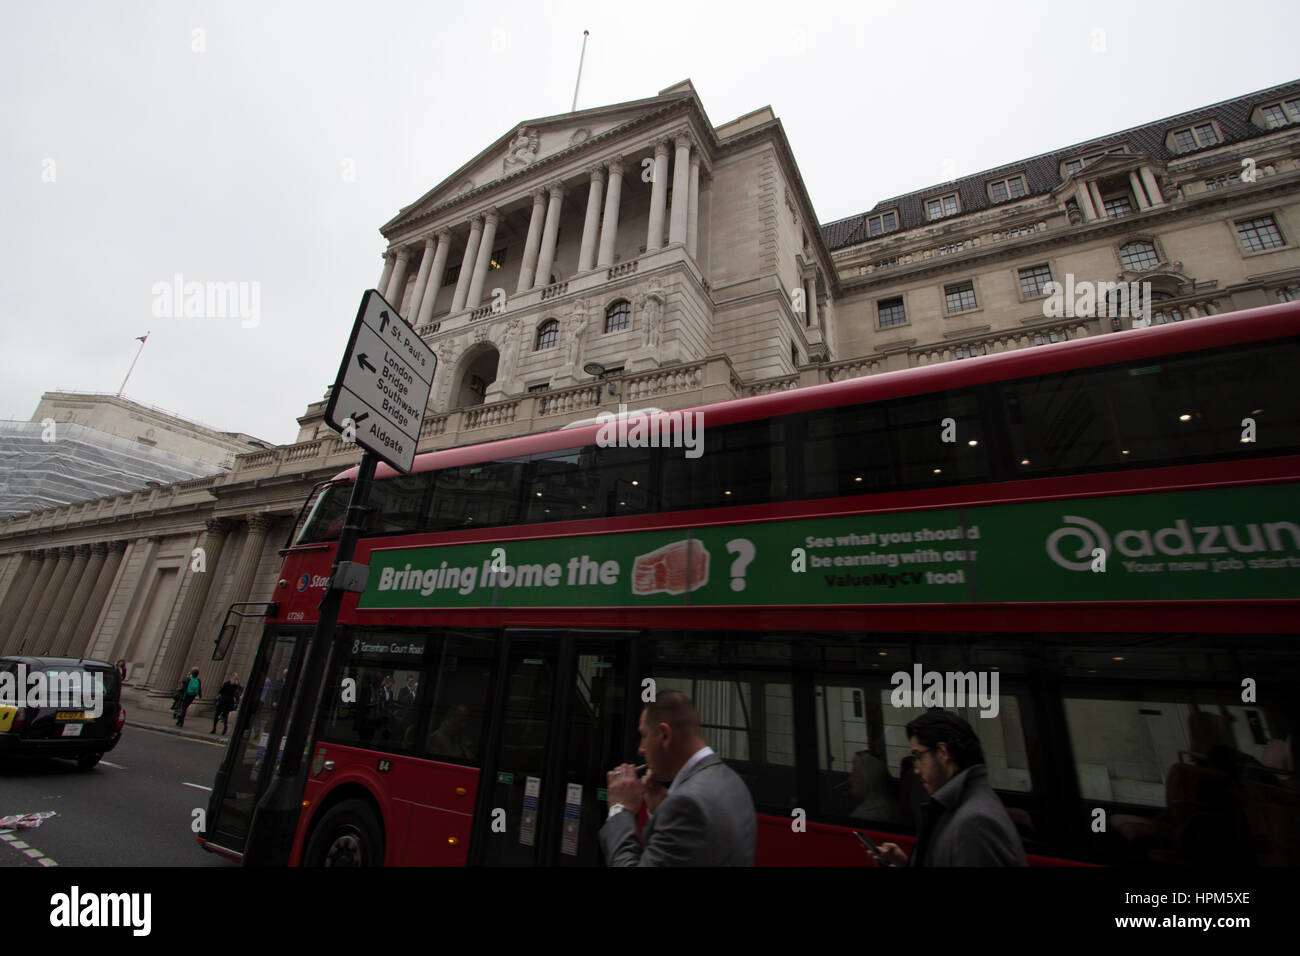 bank of england and wages, Bringing home the bacon Adzuna advert on side of bus outside bank of england - Stock Image